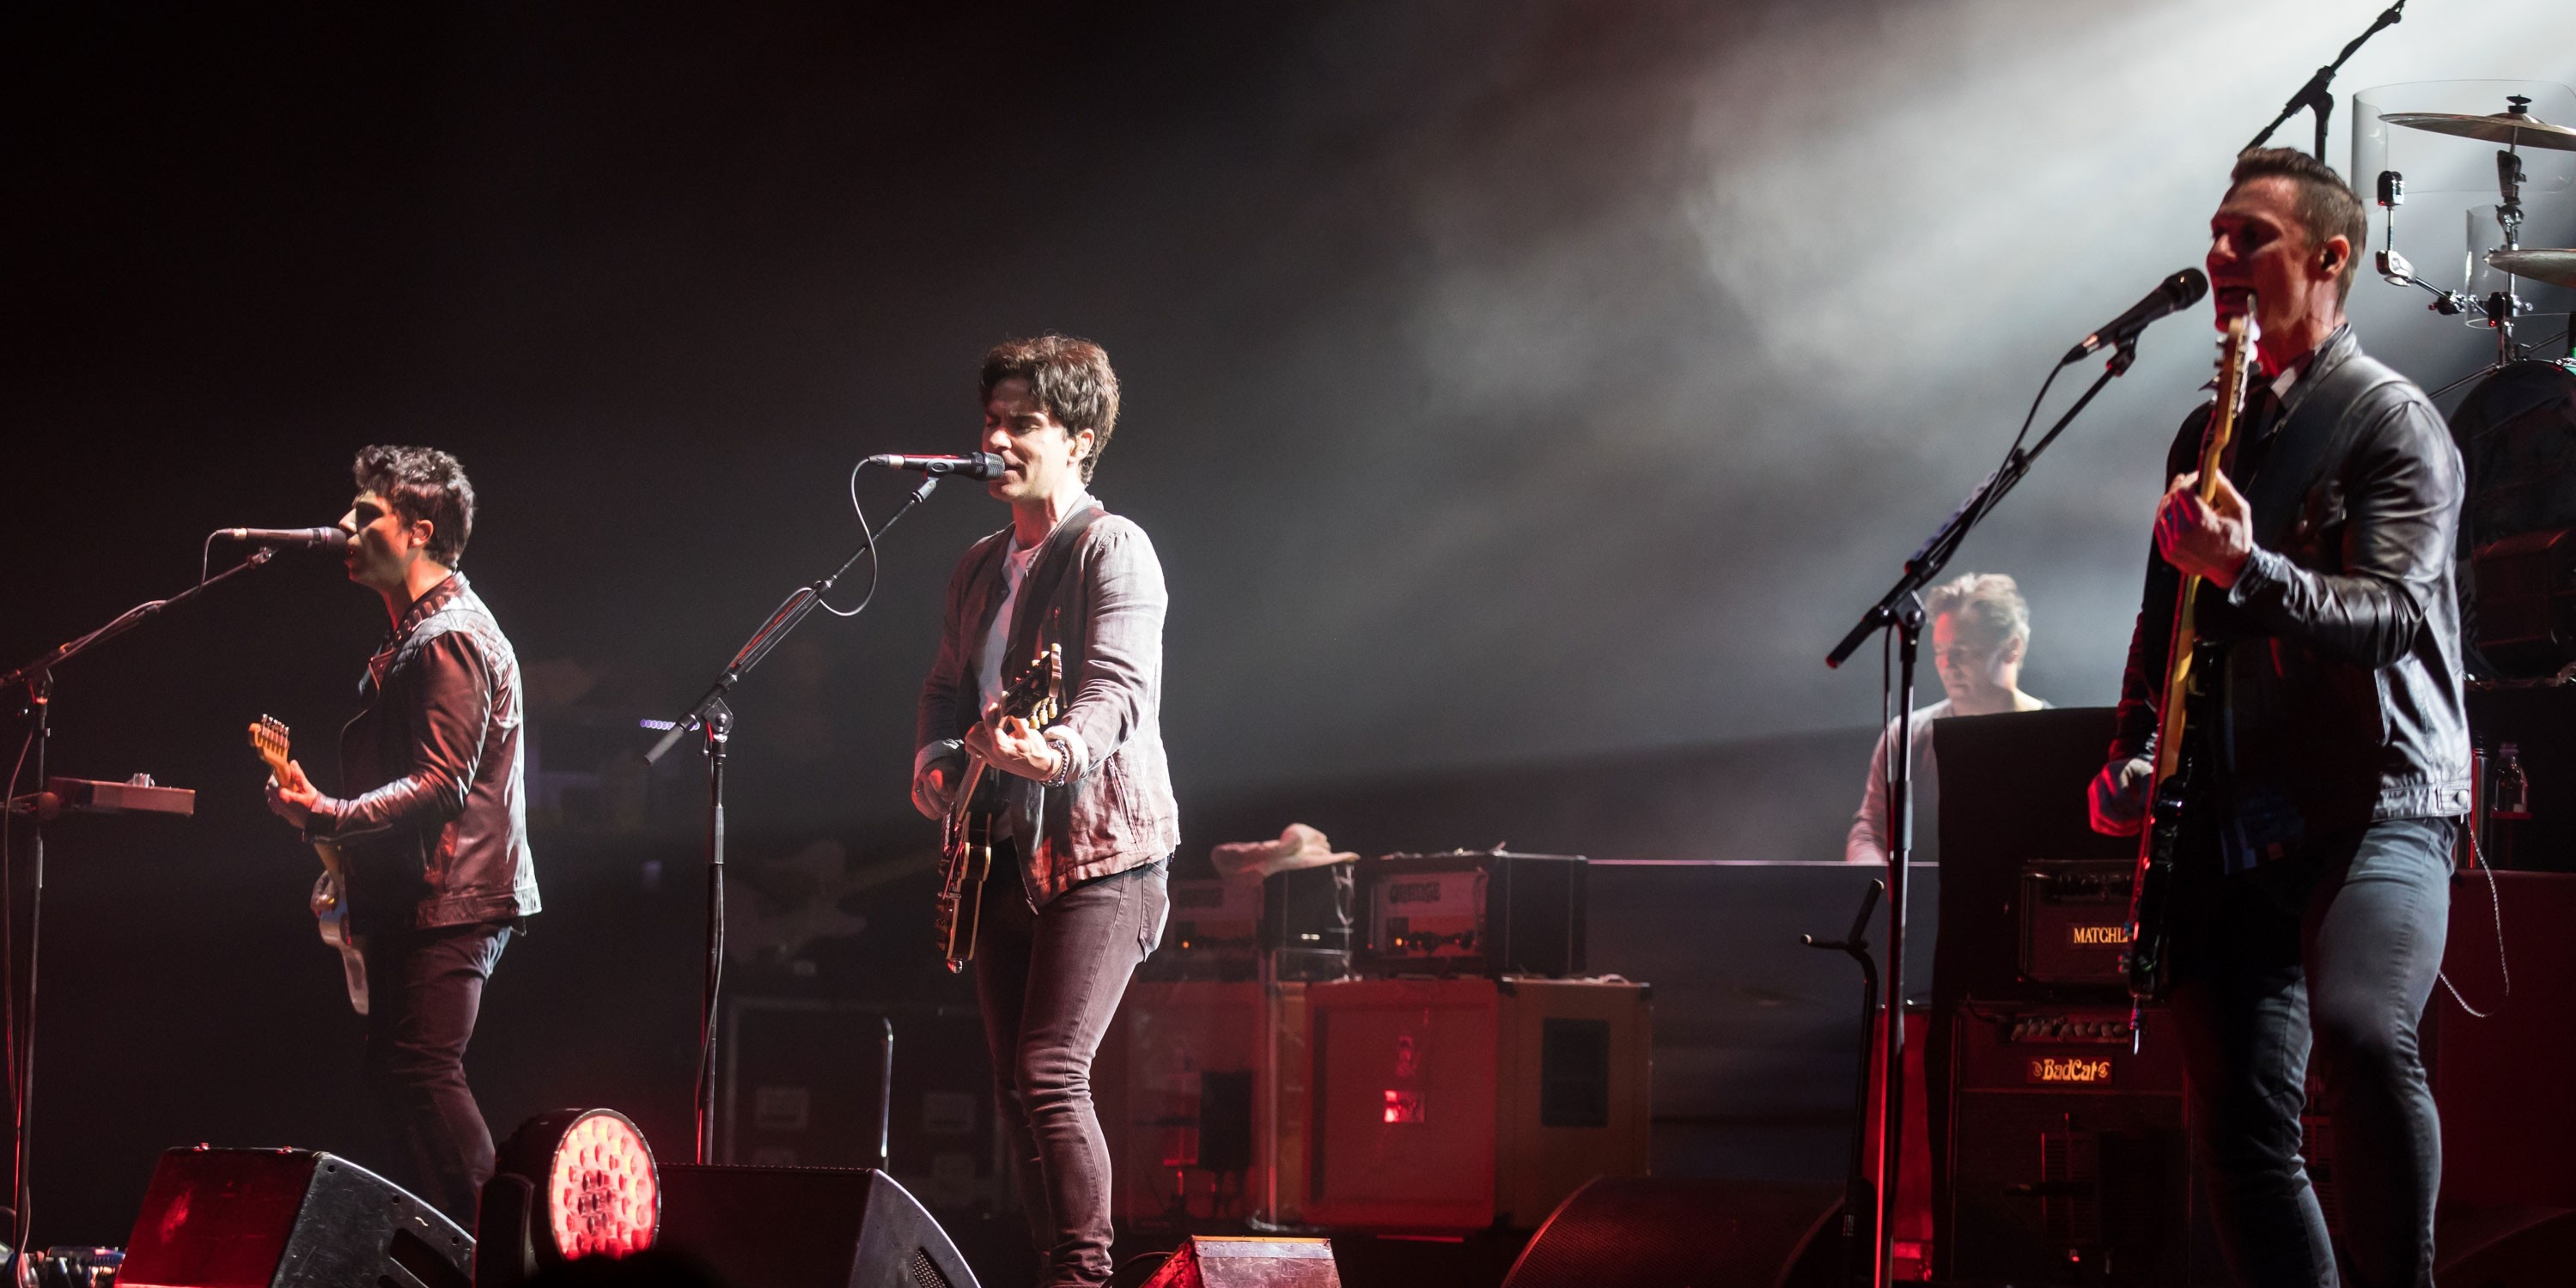 To the past and present: All In One Night with Stereophonics – gig report